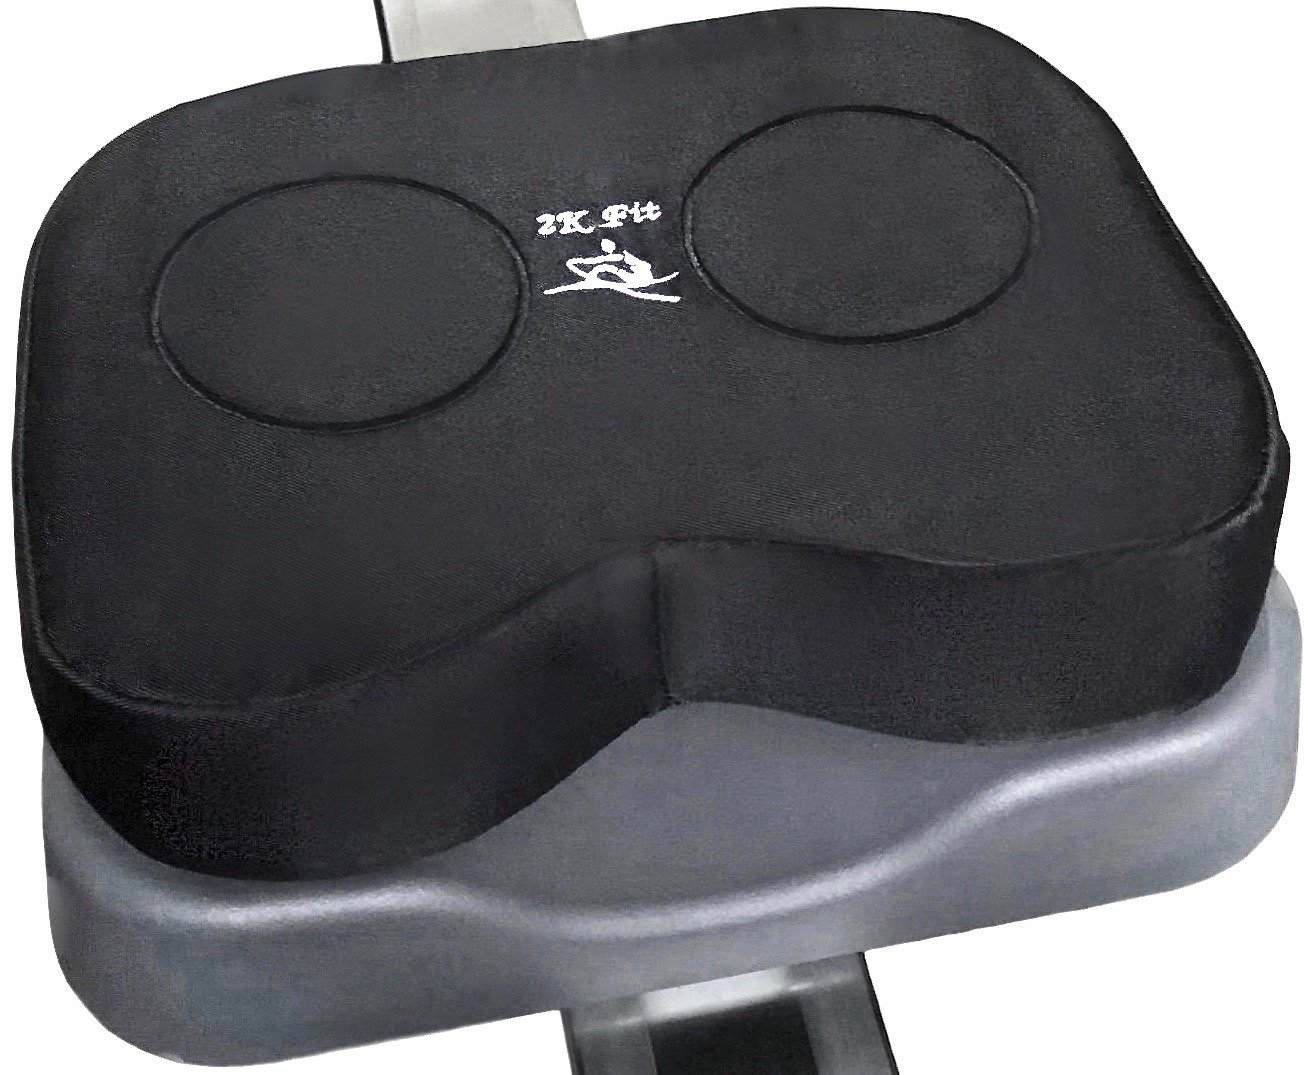 Rowing Machine Seat Cushion (Model 1) That Perfectly fits Concept 2 with Thick Updated Dual Density Memory Foam and Washable Cover by 2K Fit